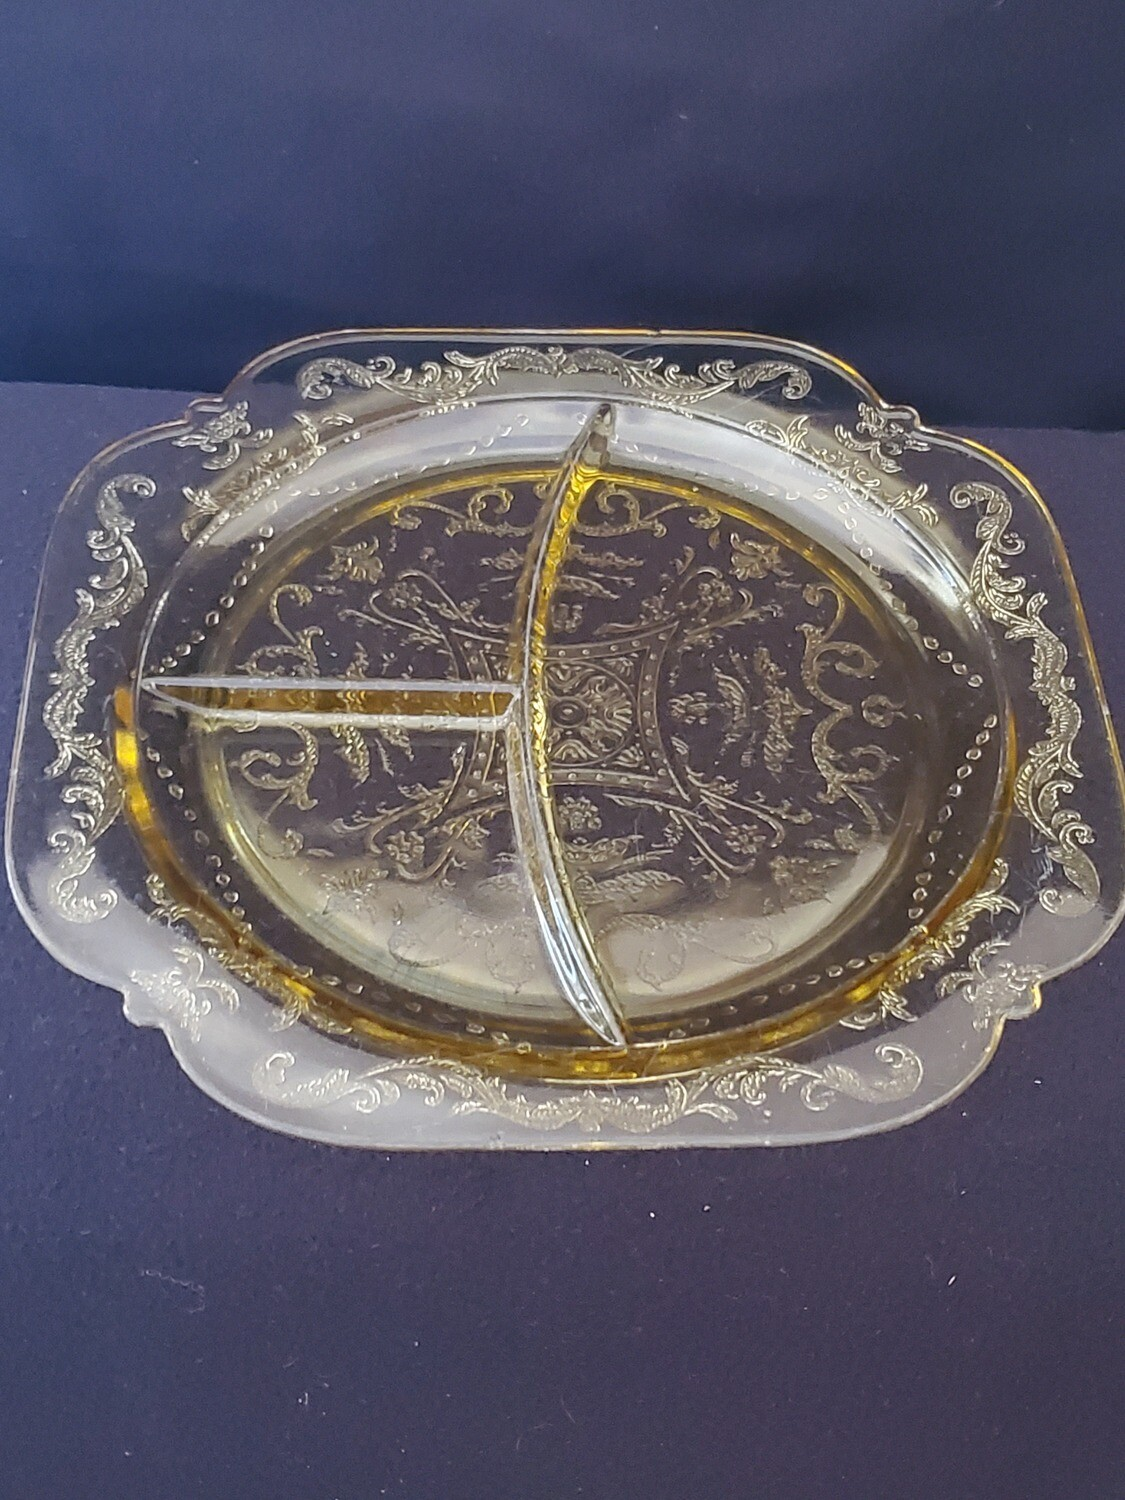 "Vintage, Grill Plate 10 1/2"", Madrid Amber Depression Glass by Federal Glass"